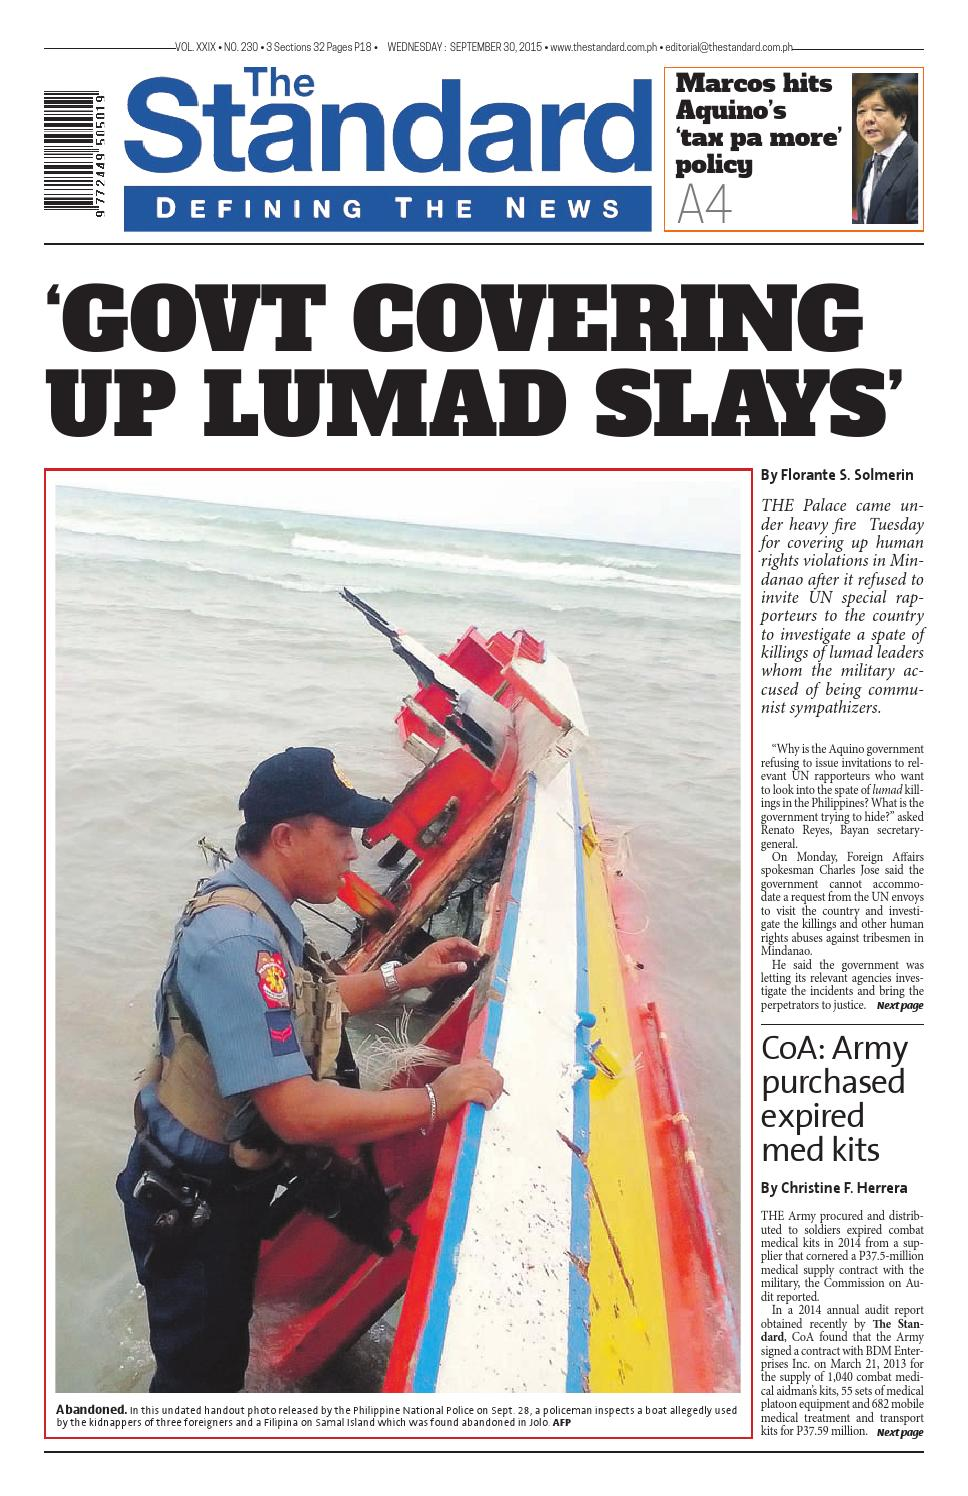 d6cba59859eb The Standard - 2015 September 30 - Wednesday by Manila Standard - issuu